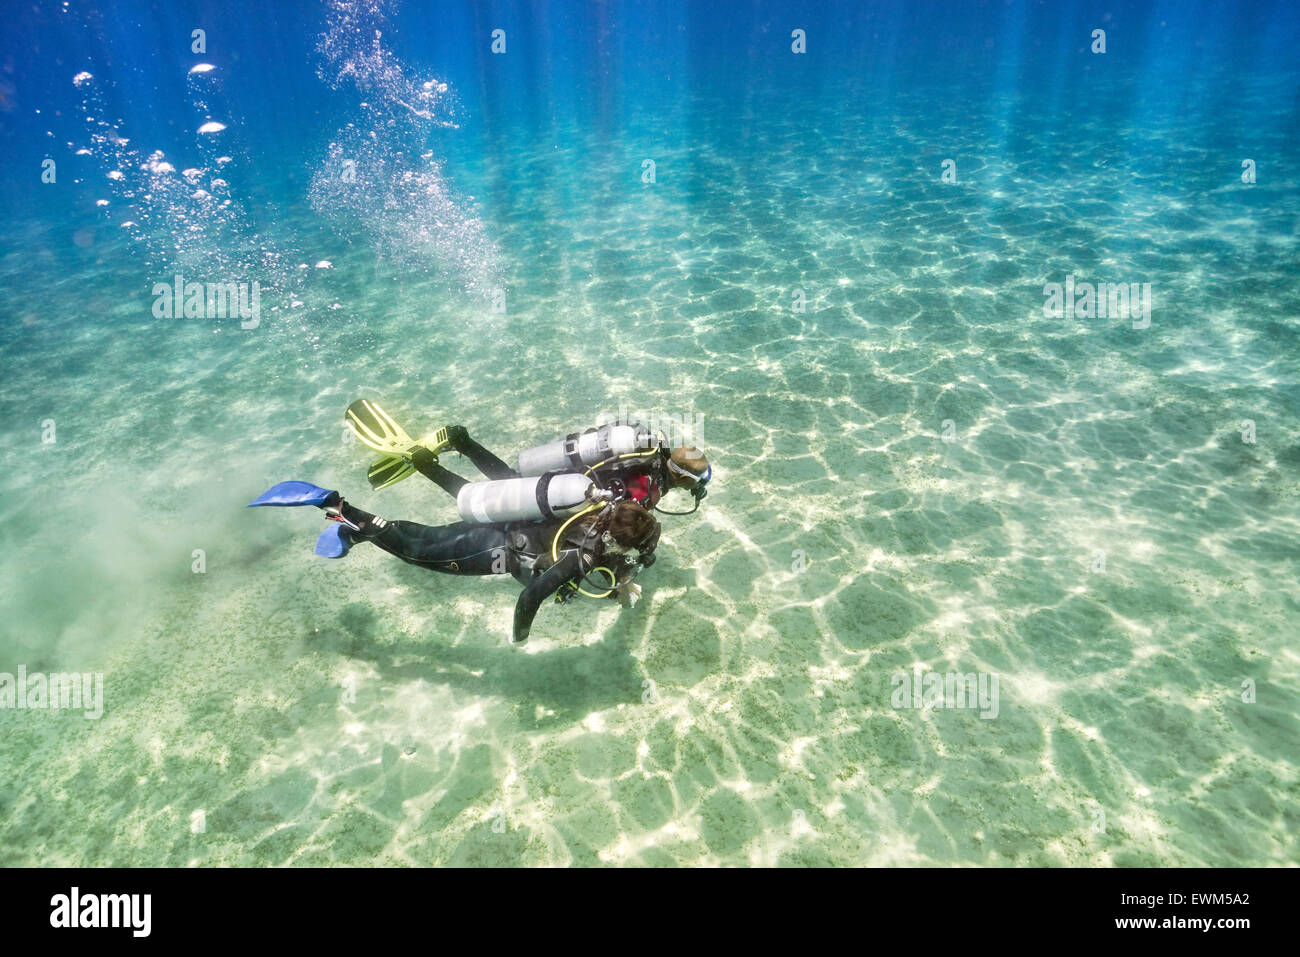 Marsa Alam, dive instructor with novice diver, first underwater dive, Red Sea, Egypt - Stock Image